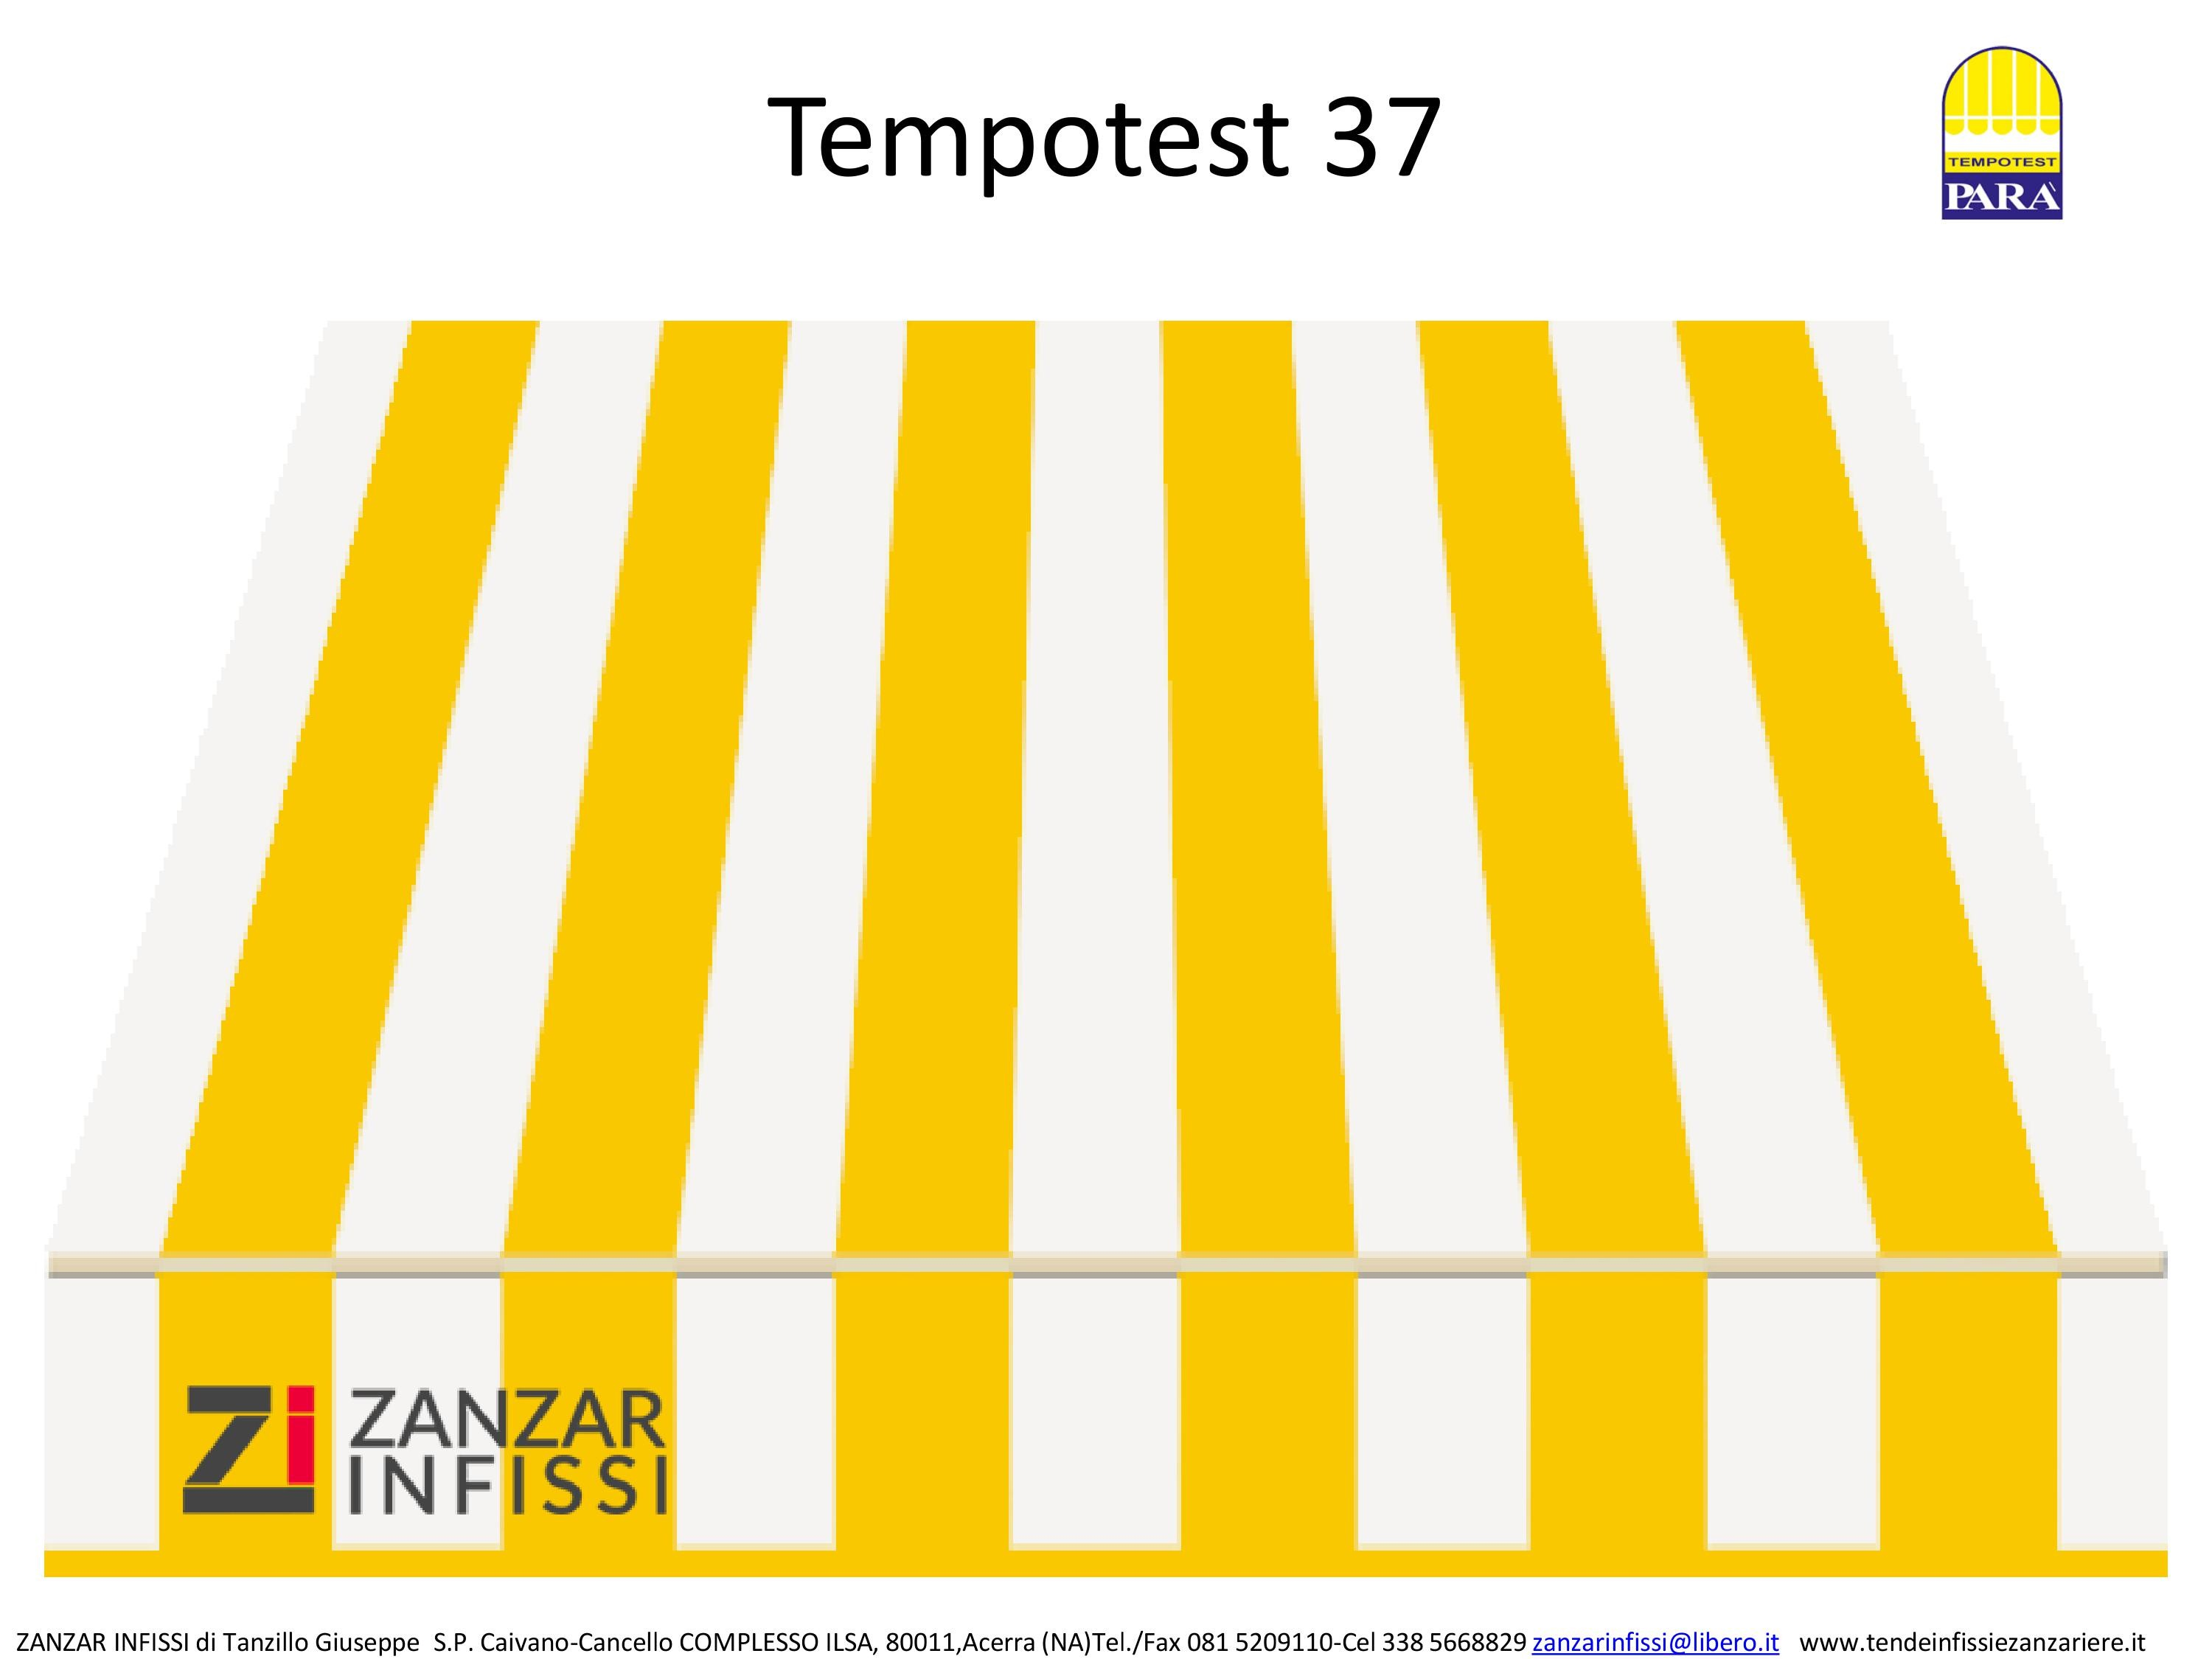 Tempotest 37